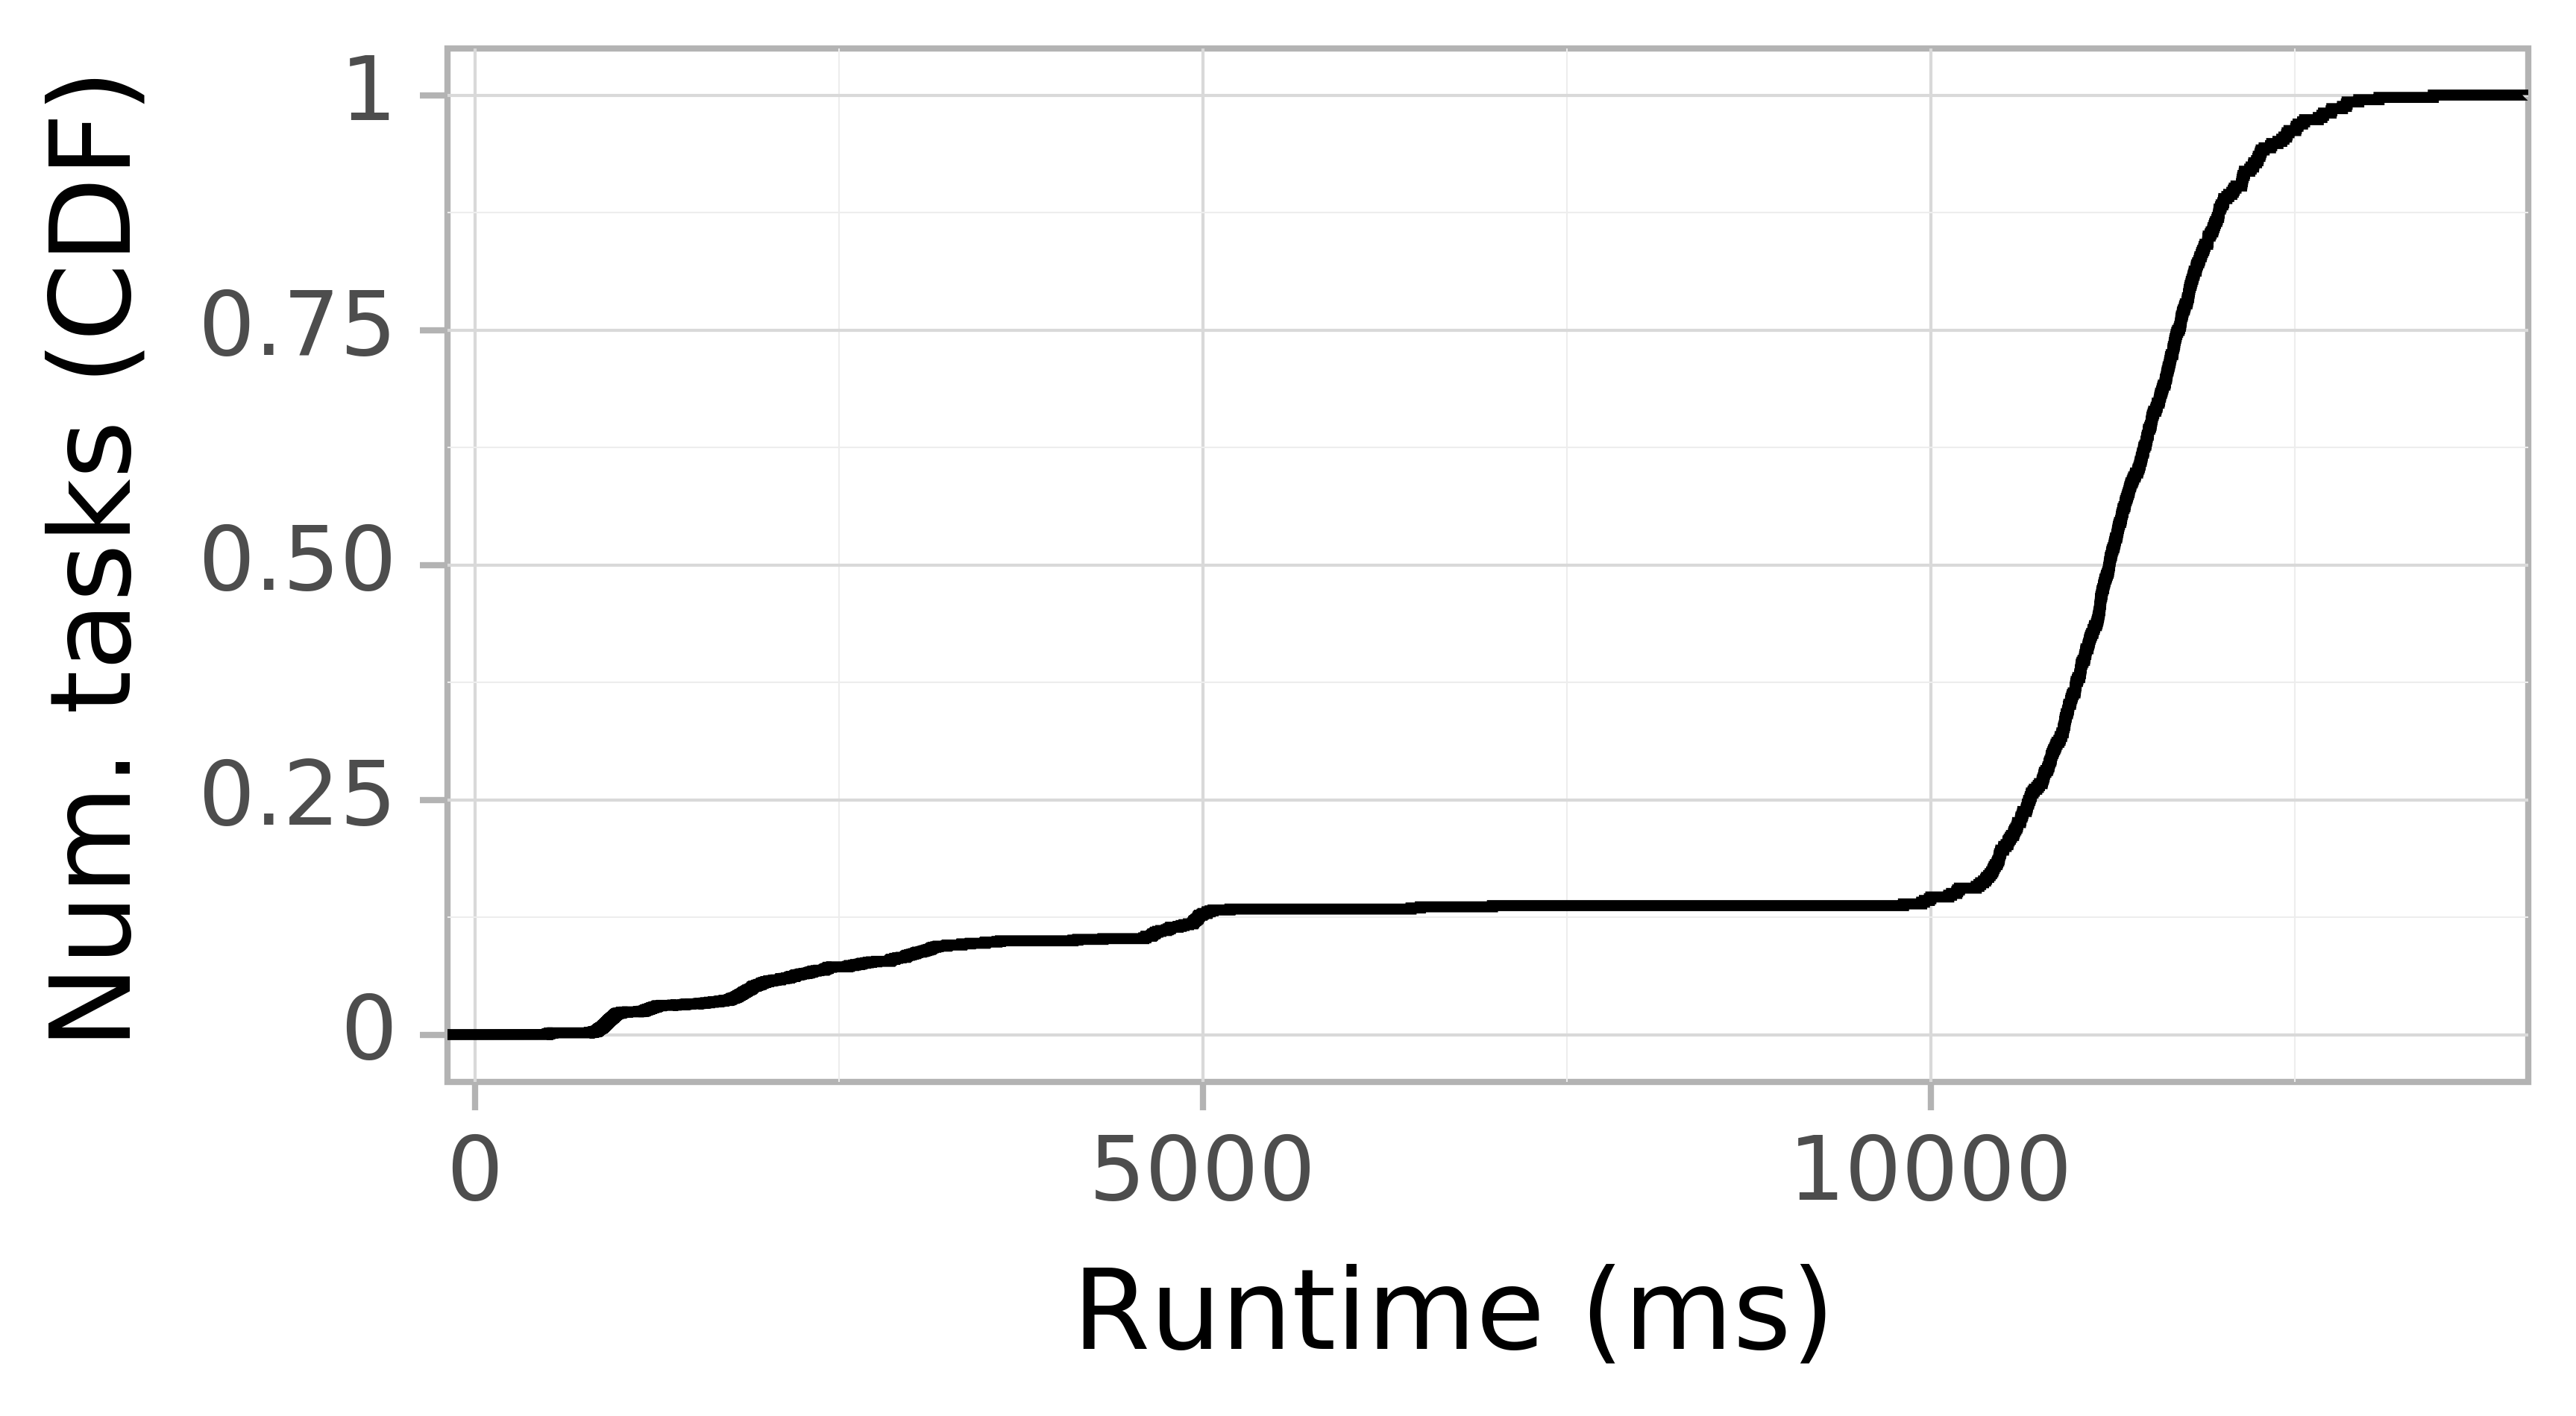 Task runtime CDF graph for the askalon-new_ee43 trace.